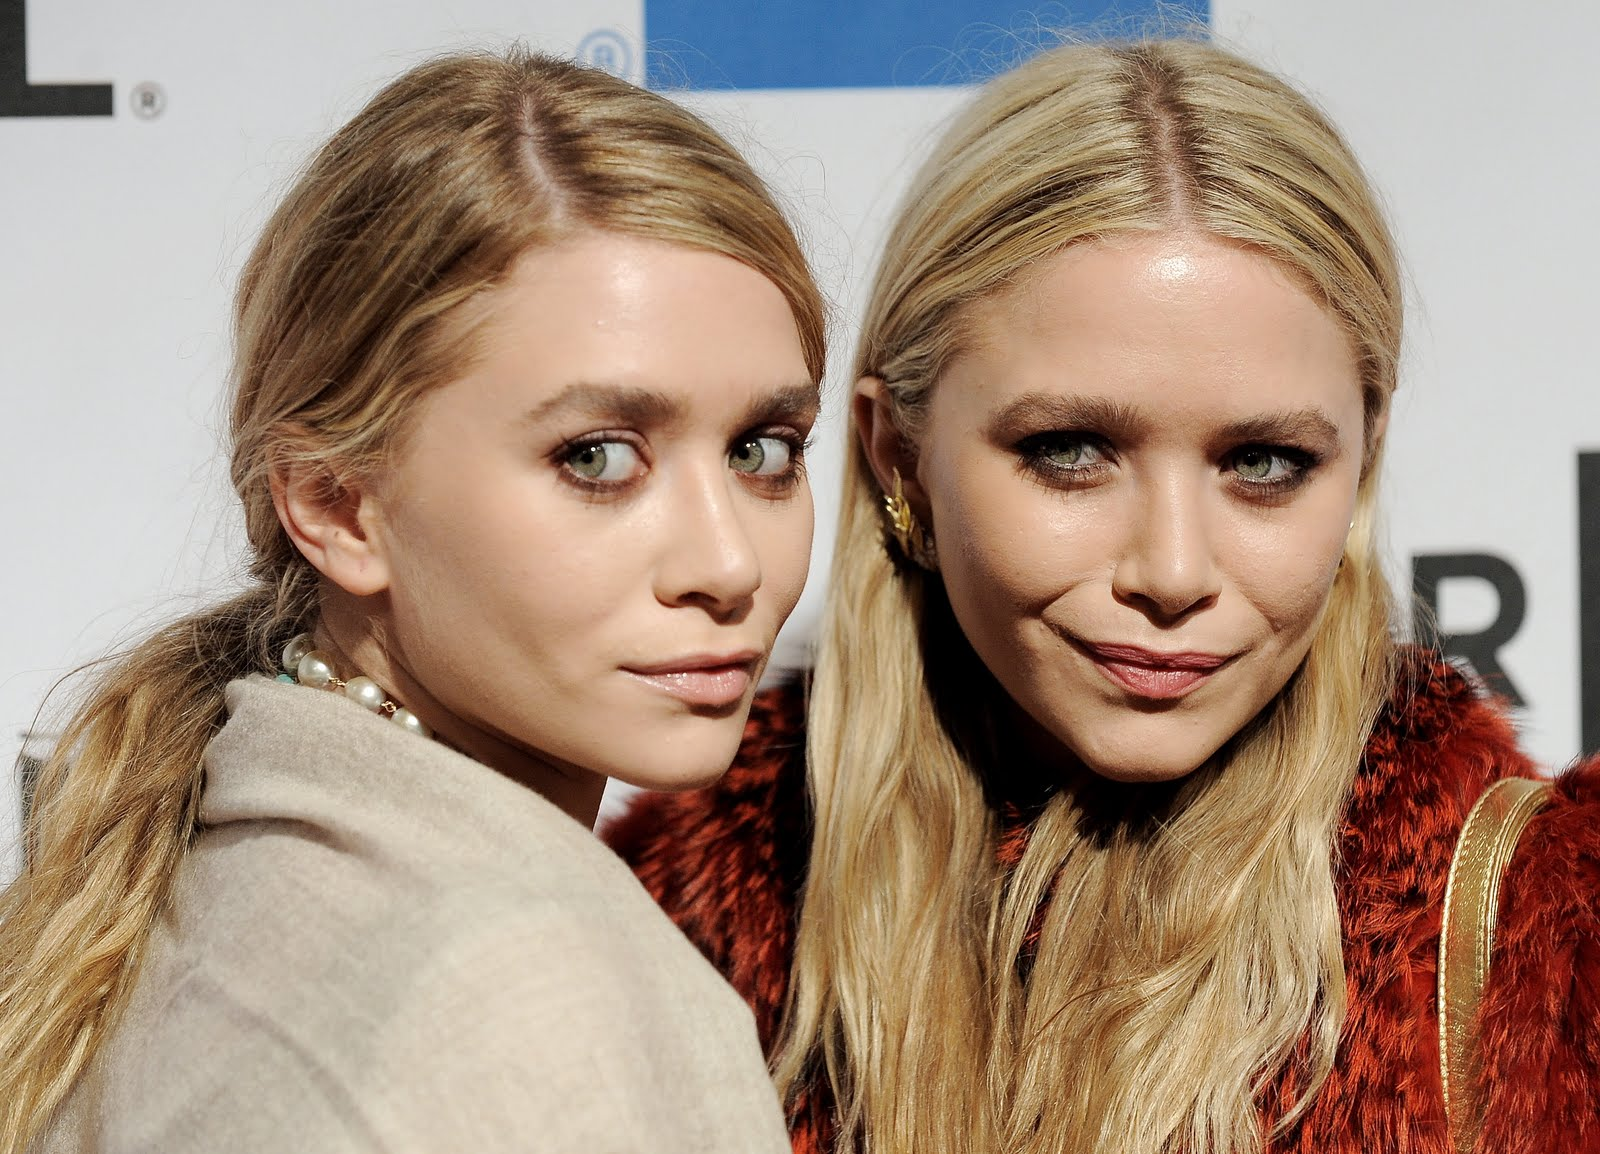 http://1.bp.blogspot.com/-TmoN_gtfokM/TbCsd2iRkVI/AAAAAAAAC9Y/xmzF5PtApSQ/s1600/10796_Mary_Kate_Ashley_Olsen_The_Union_Premiere_J0001_001_122_22lo.jpg